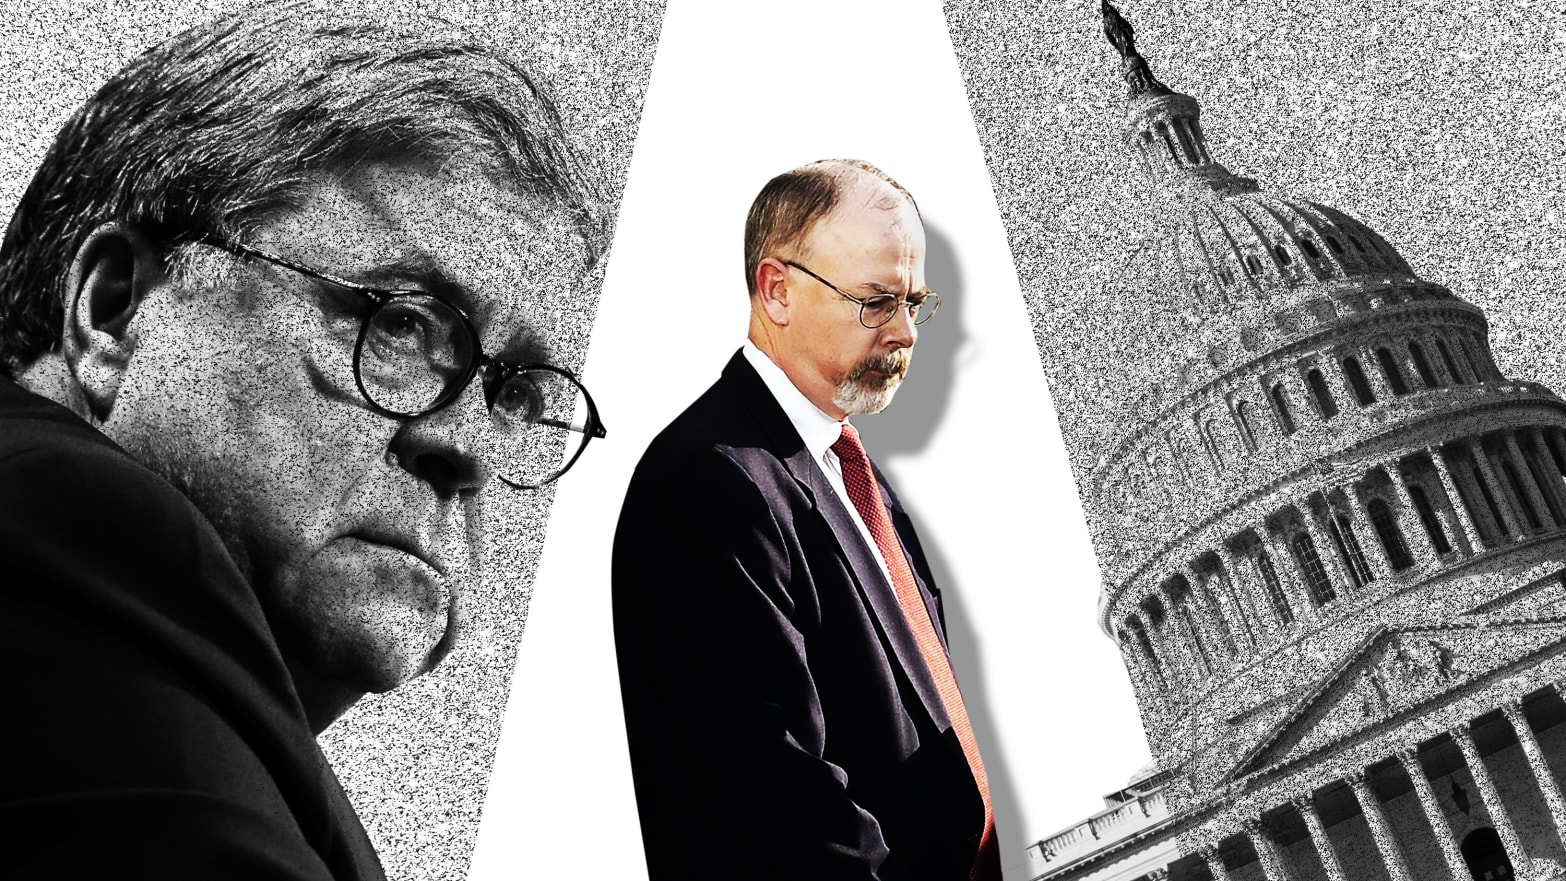 William Barr Assignment of John Durham to Look at Russia